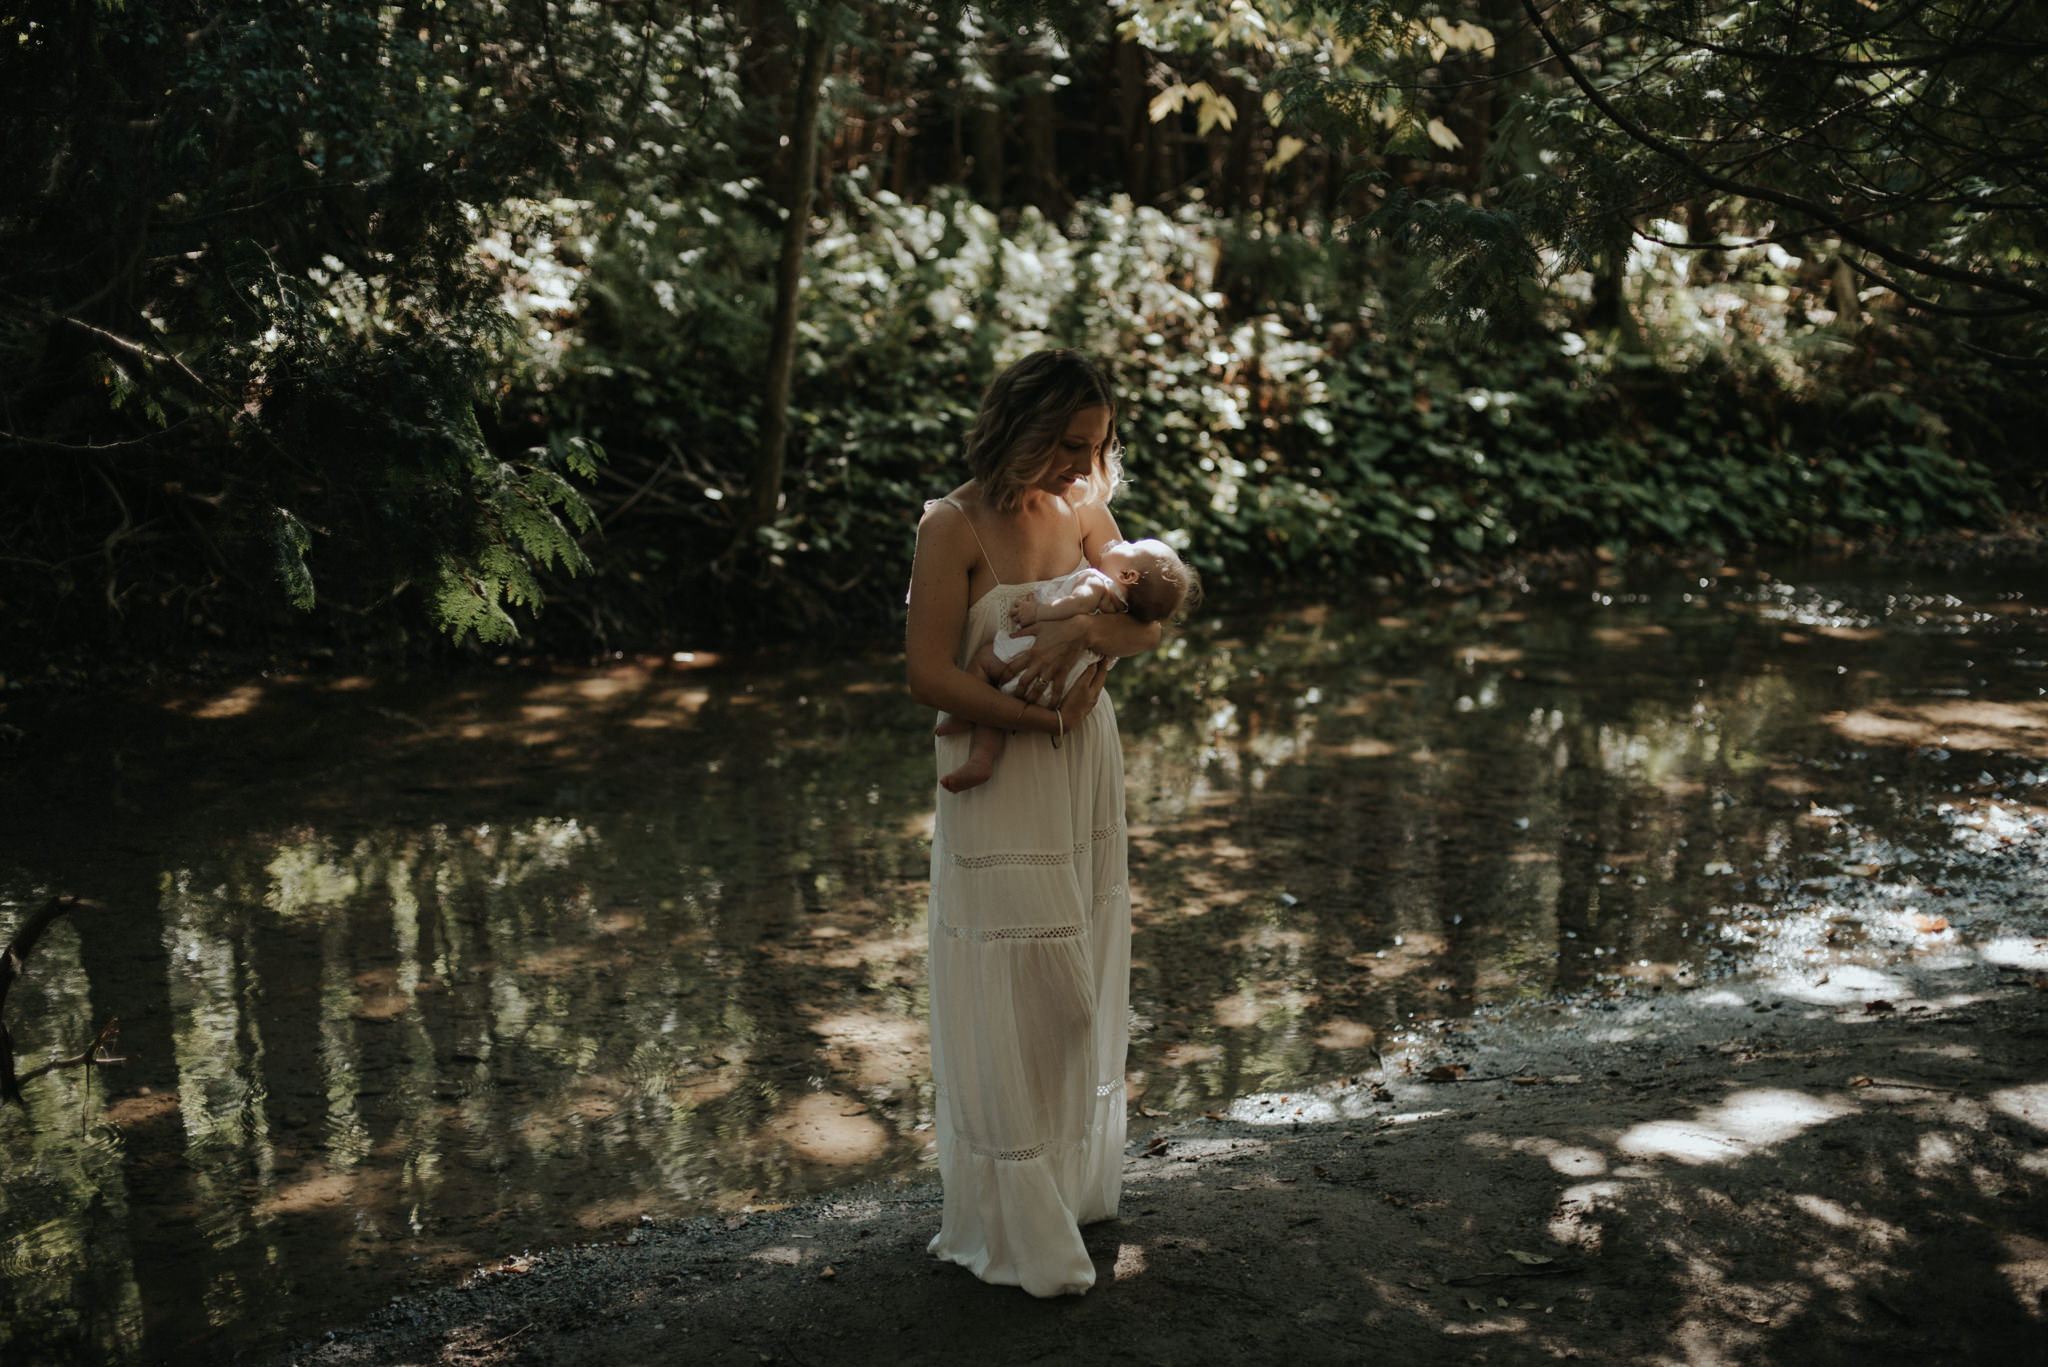 New mother carrying newborn daughter by a river in a forest for newborn portraits